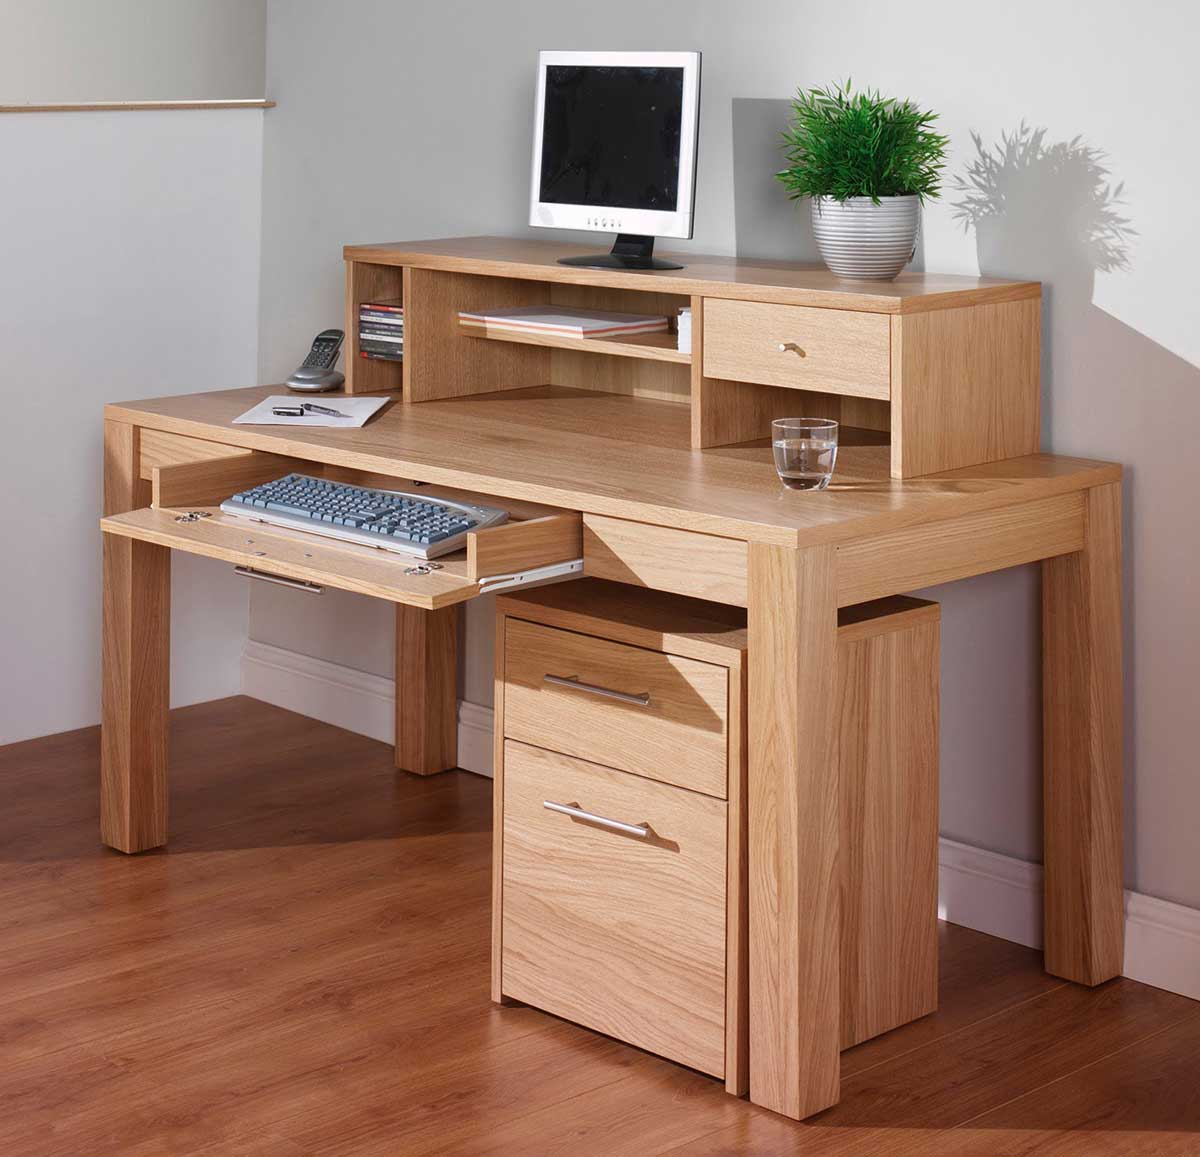 Oak Corner Computer Desks for Home Office | Office Furniture